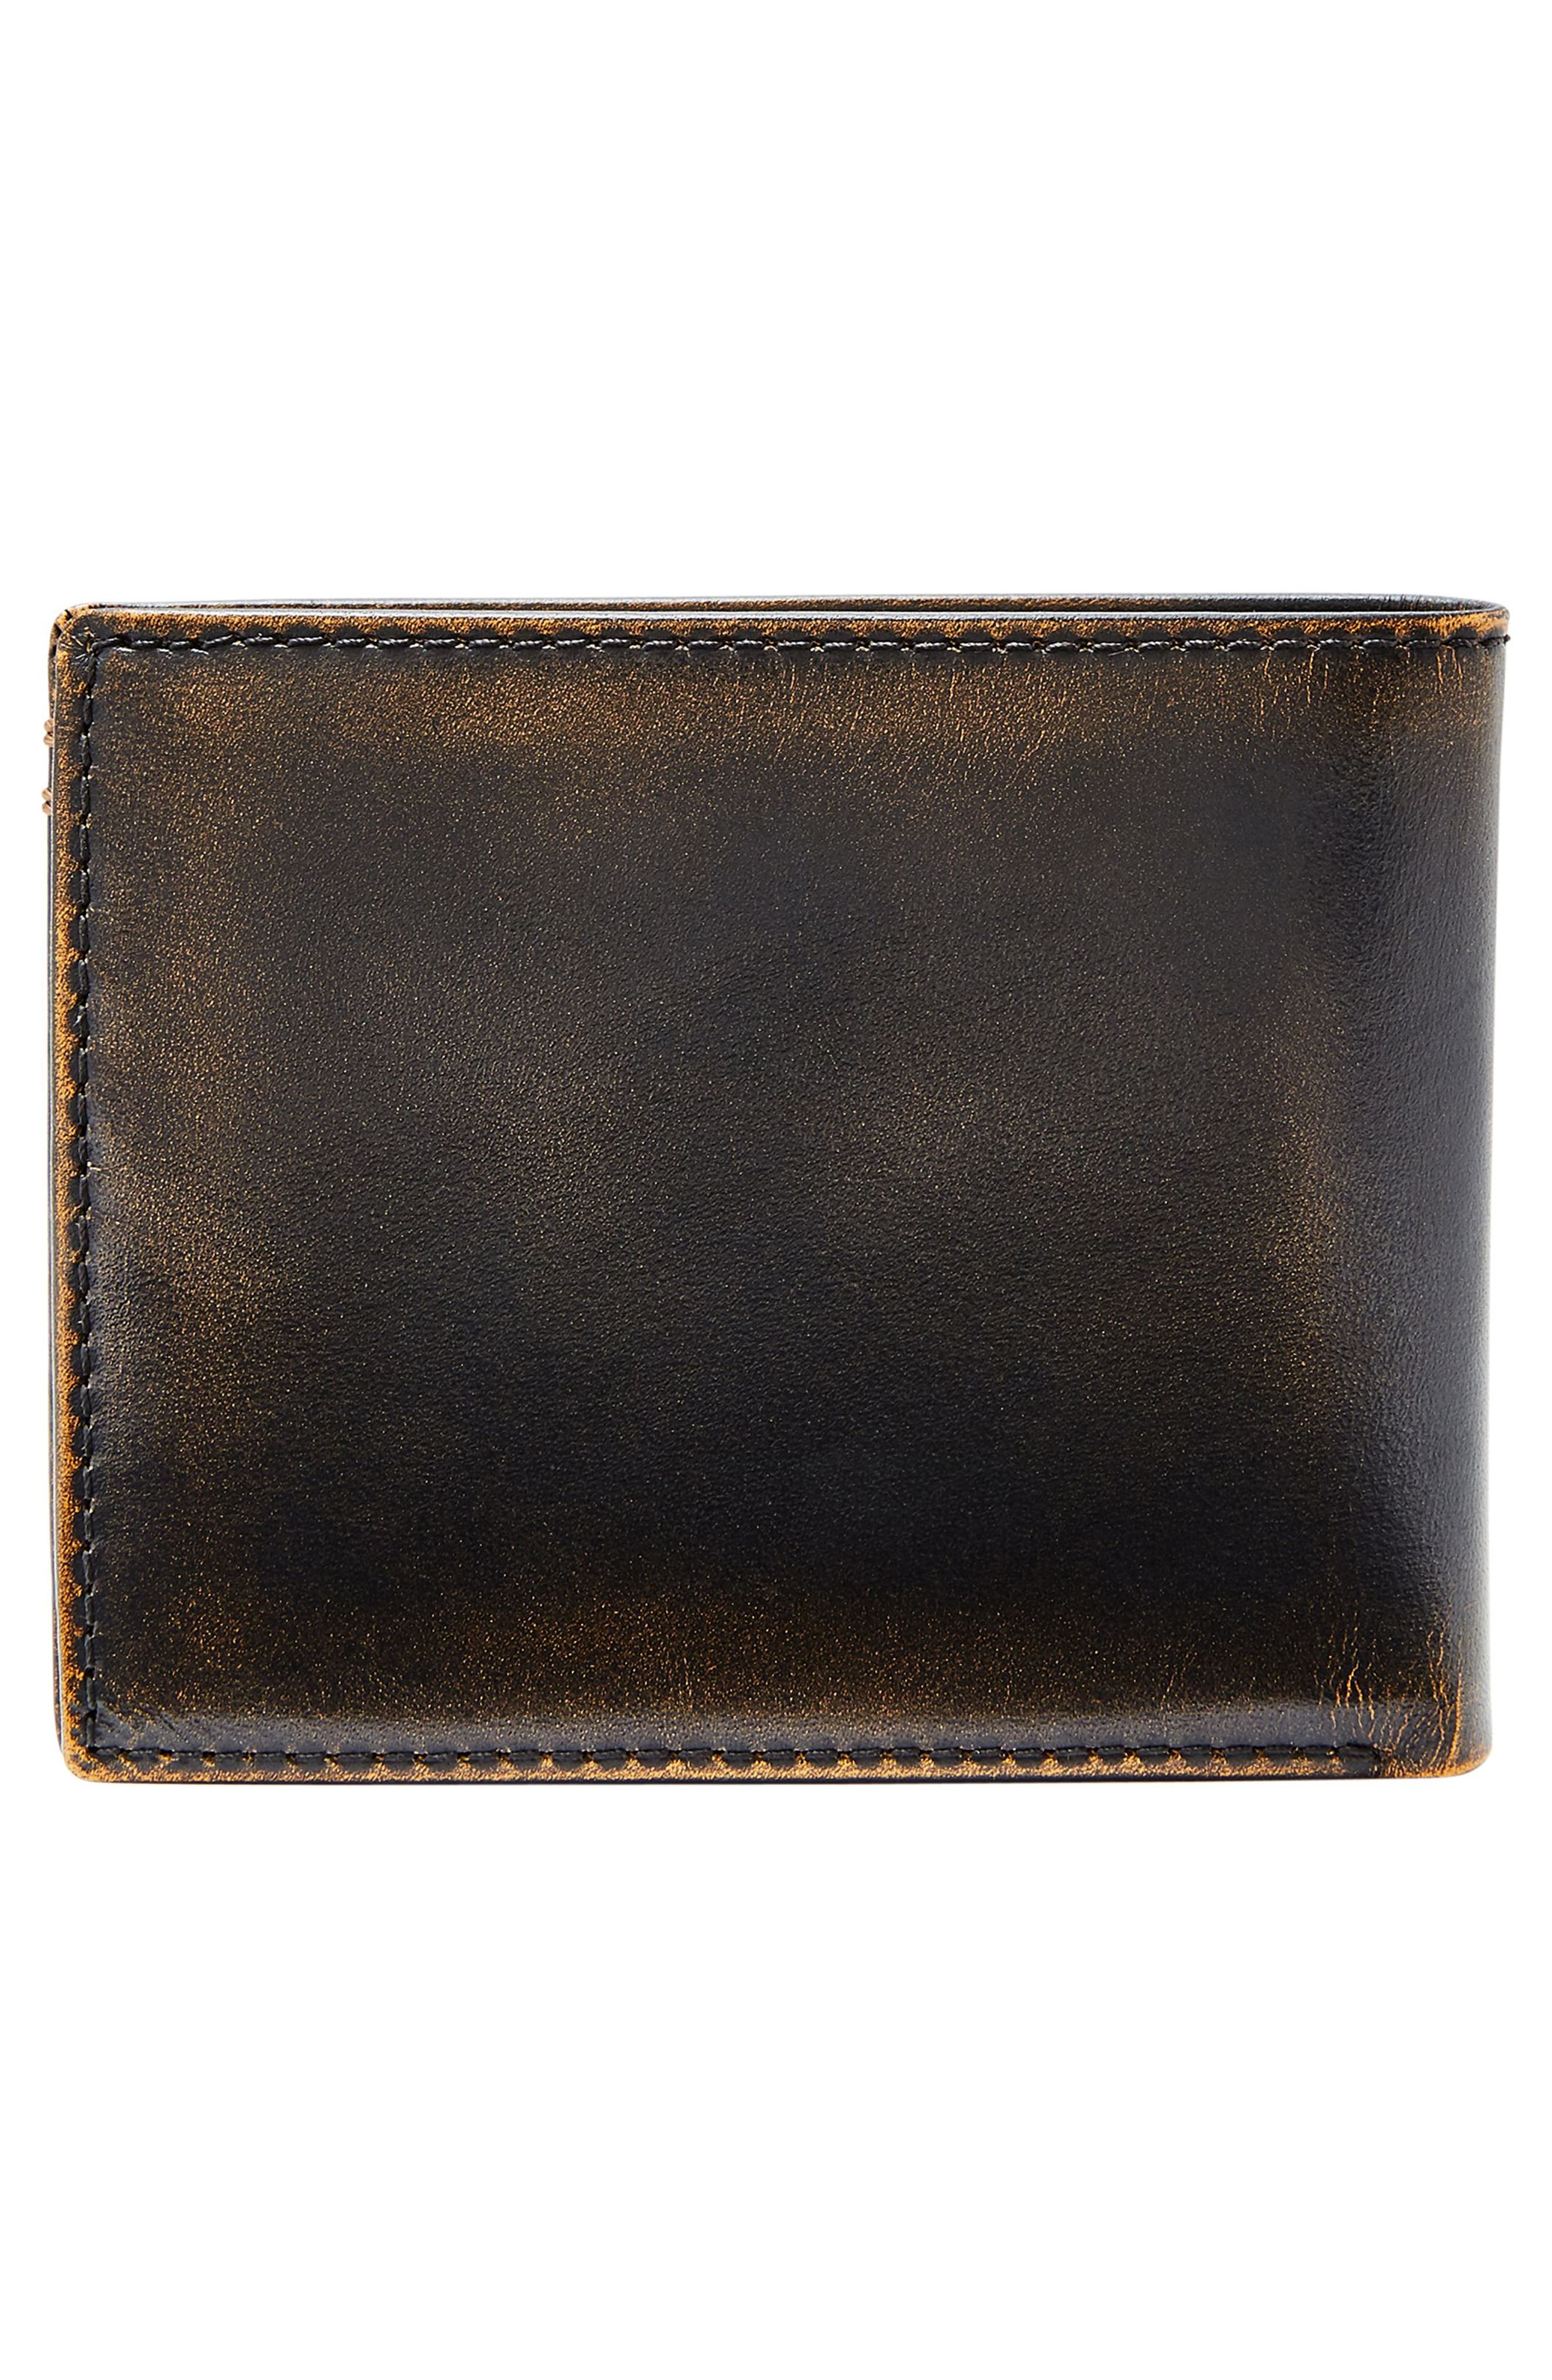 Wade Leather Wallet,                             Alternate thumbnail 4, color,                             BLACK